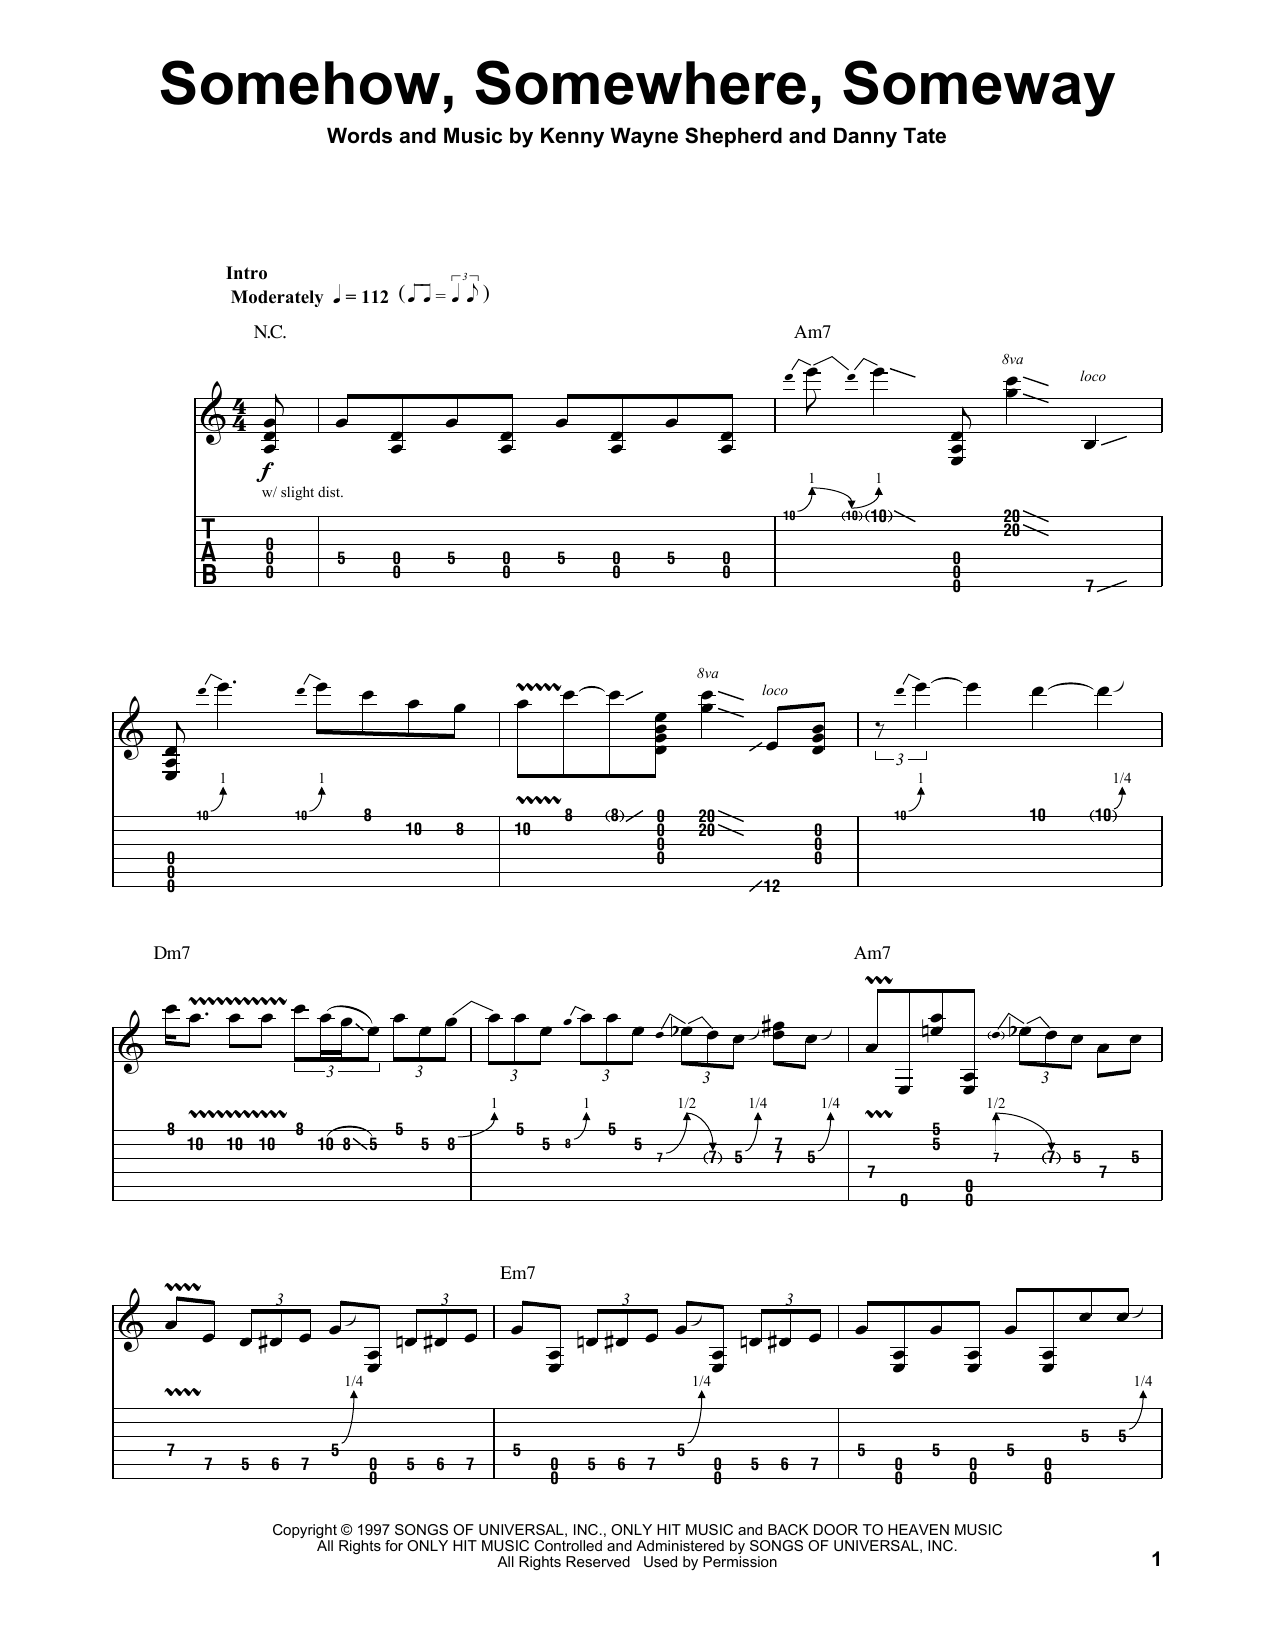 Somehow, Somewhere, Someway (Guitar Tab (Single Guitar))